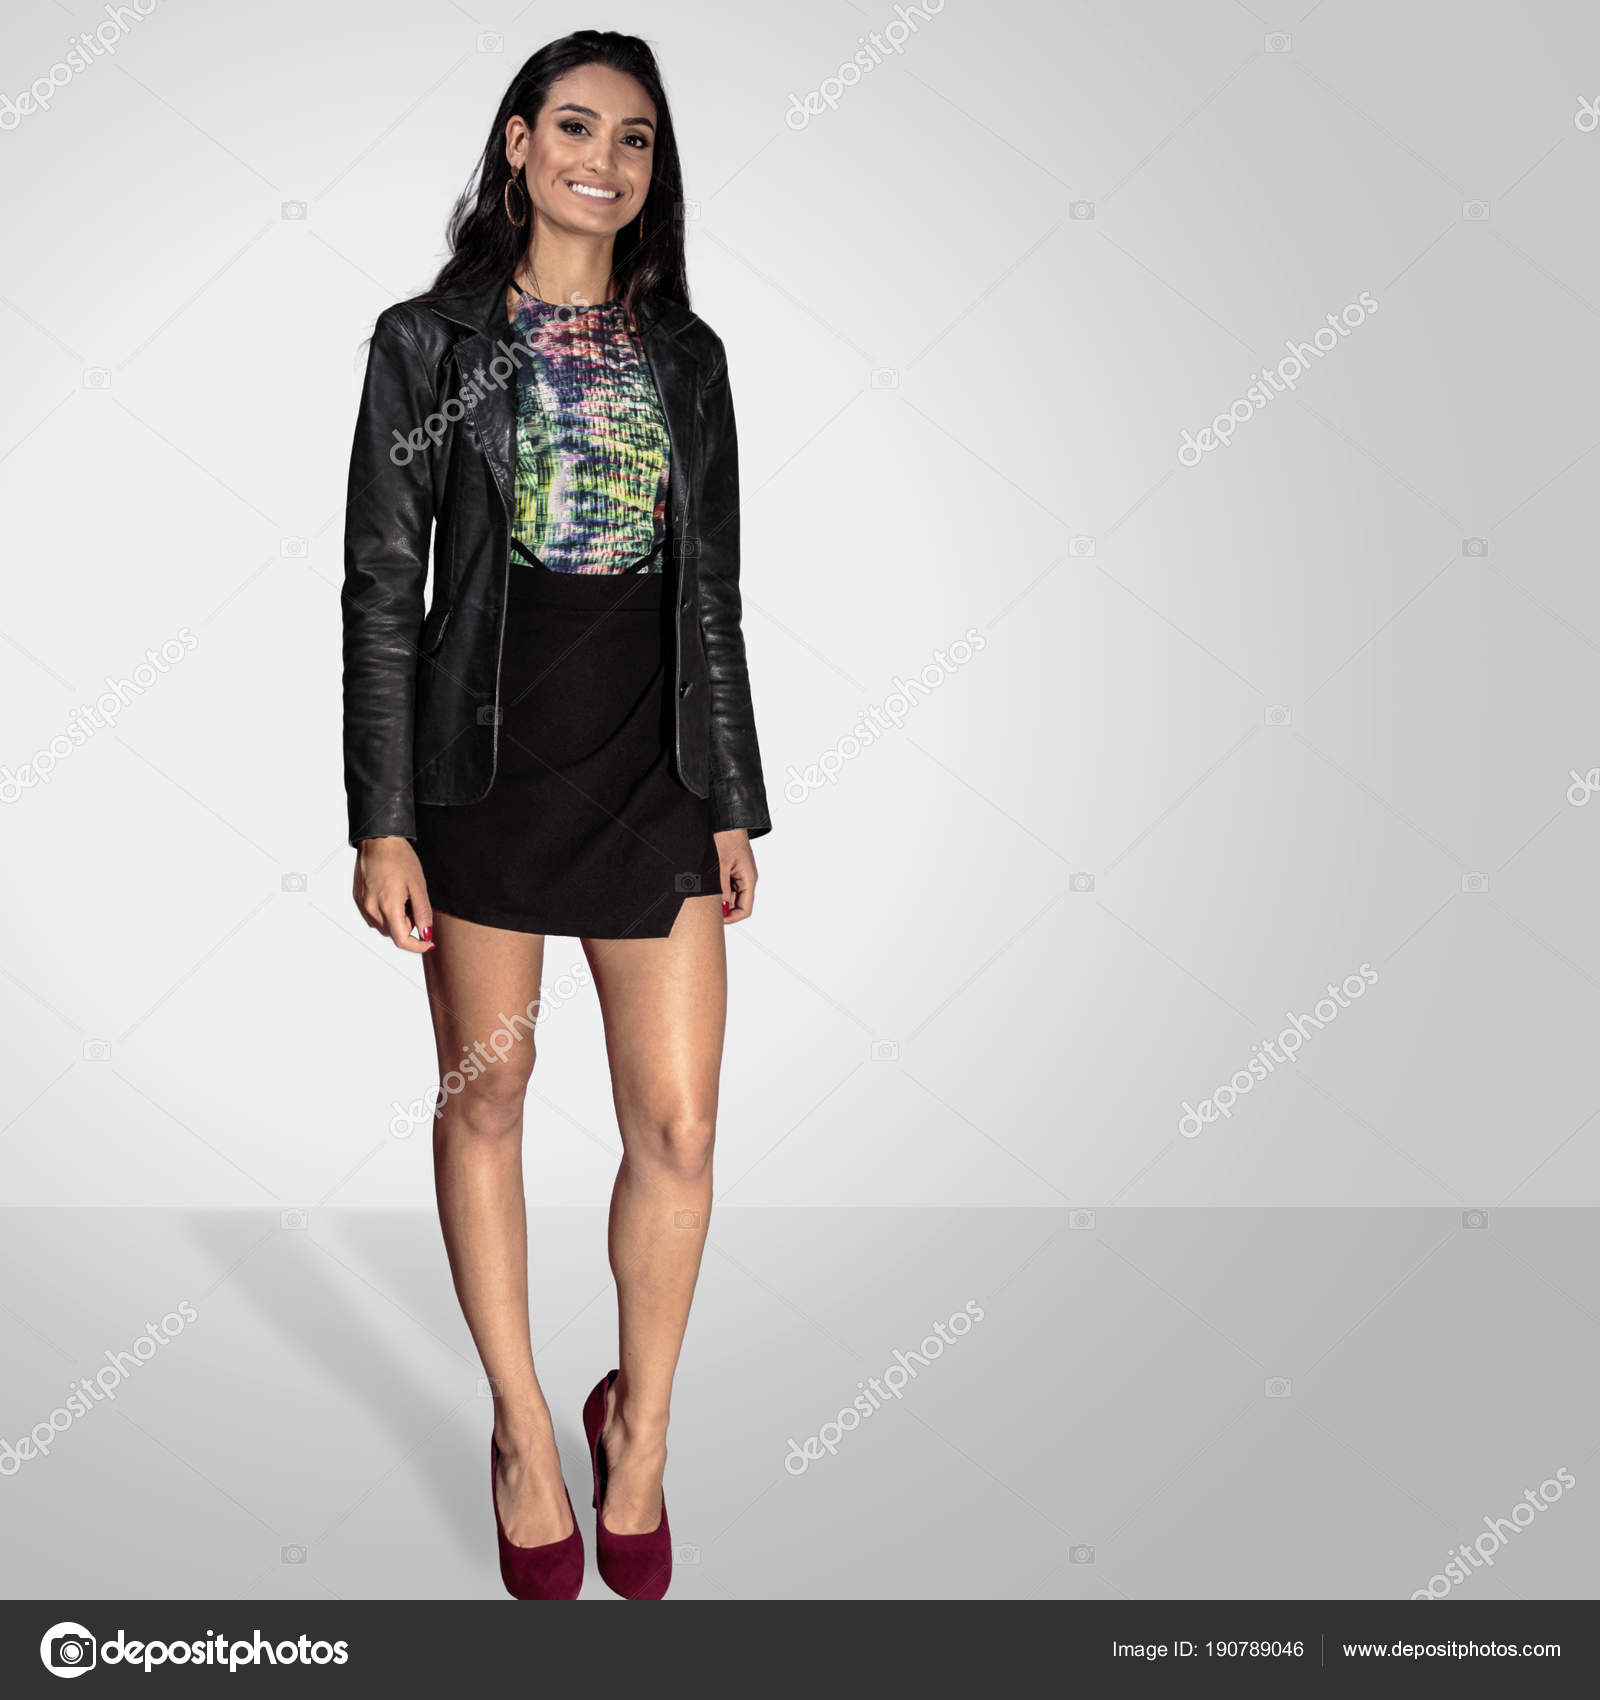 3f39d0d89 Long Hair Brunette Woman Wearing Black Mini Skirt Red Shoes — Stock Photo